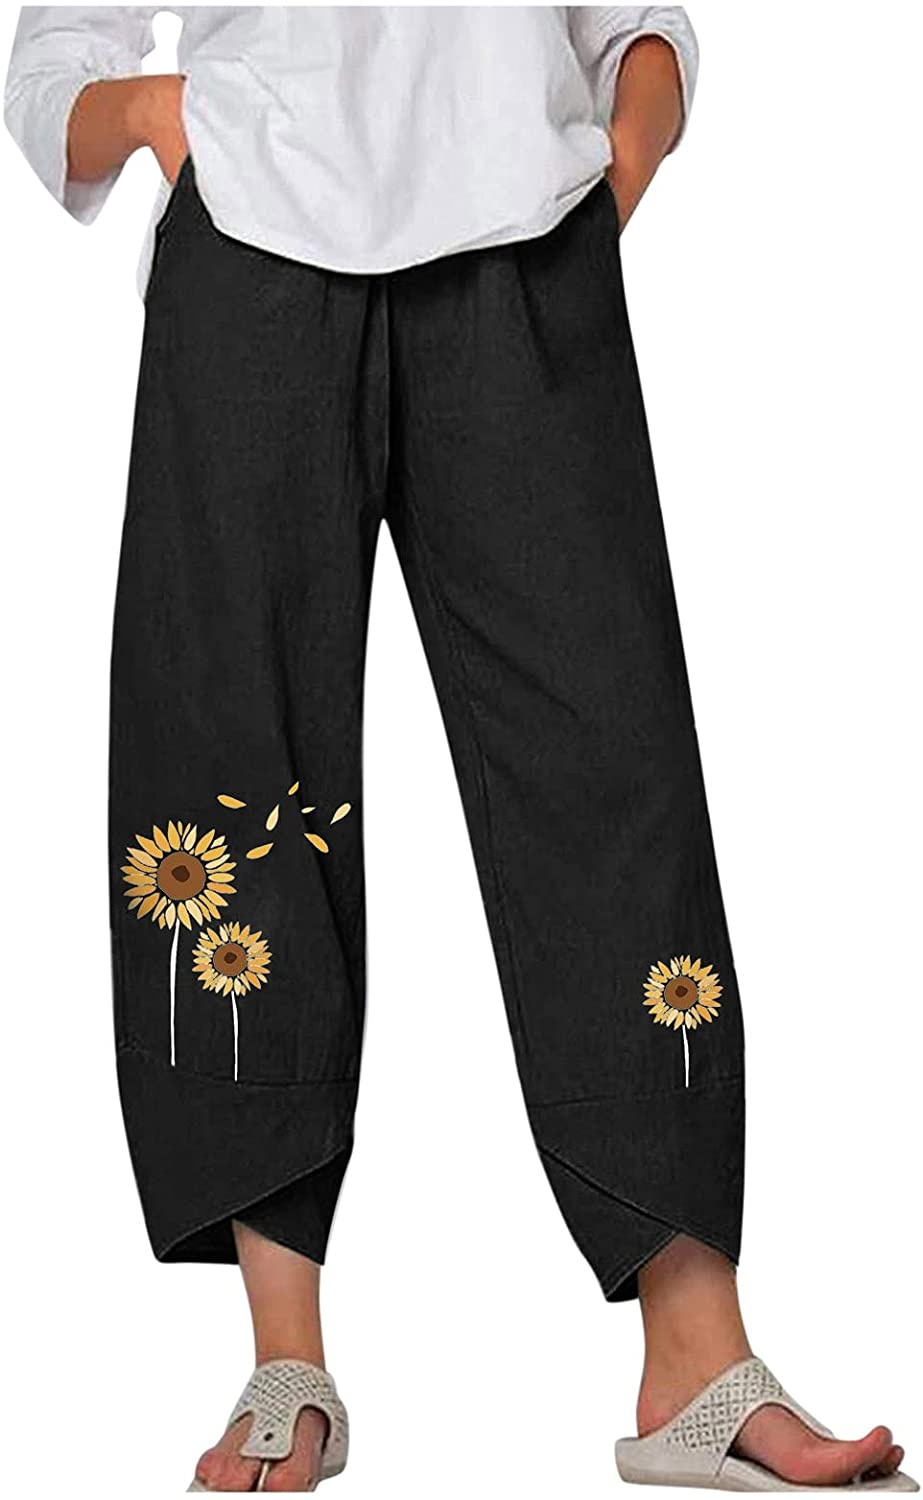 Wabtum Summer Pants for Free Shipping Cheap Bargain Import Gift Women Cotton Casual Floral Print Women's